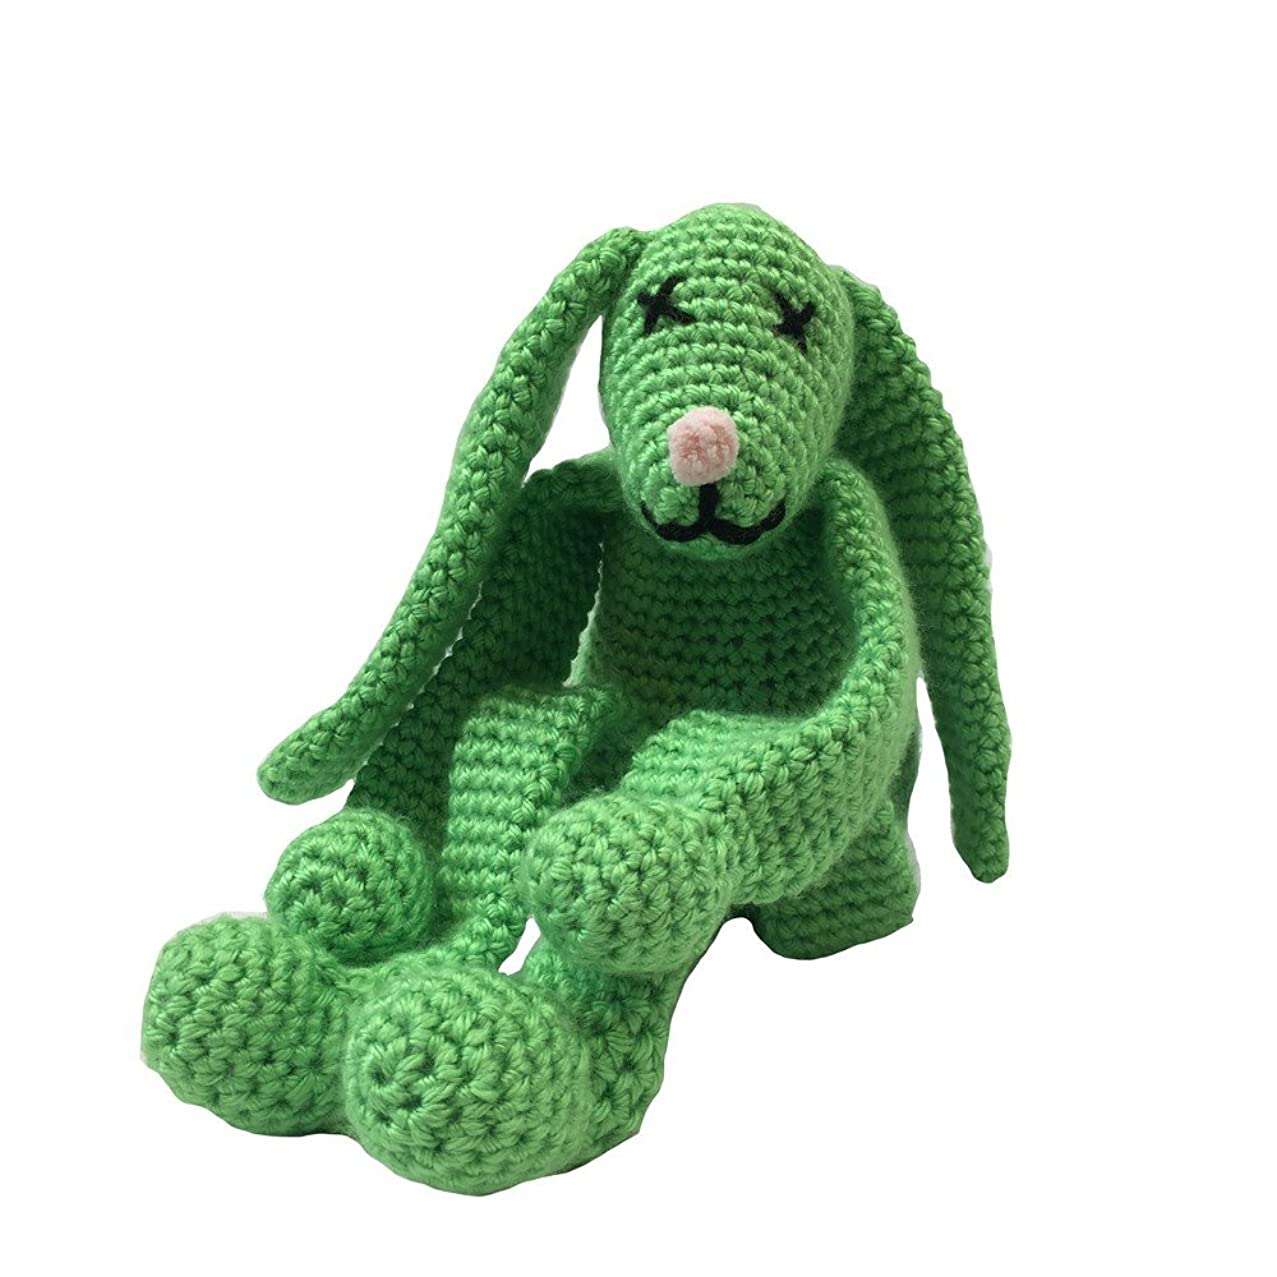 Creative World of Crafts Knitty Critters - Potting Shed Bunnies - Limelight (A Complete KNITTY Critters Crochet KIT)